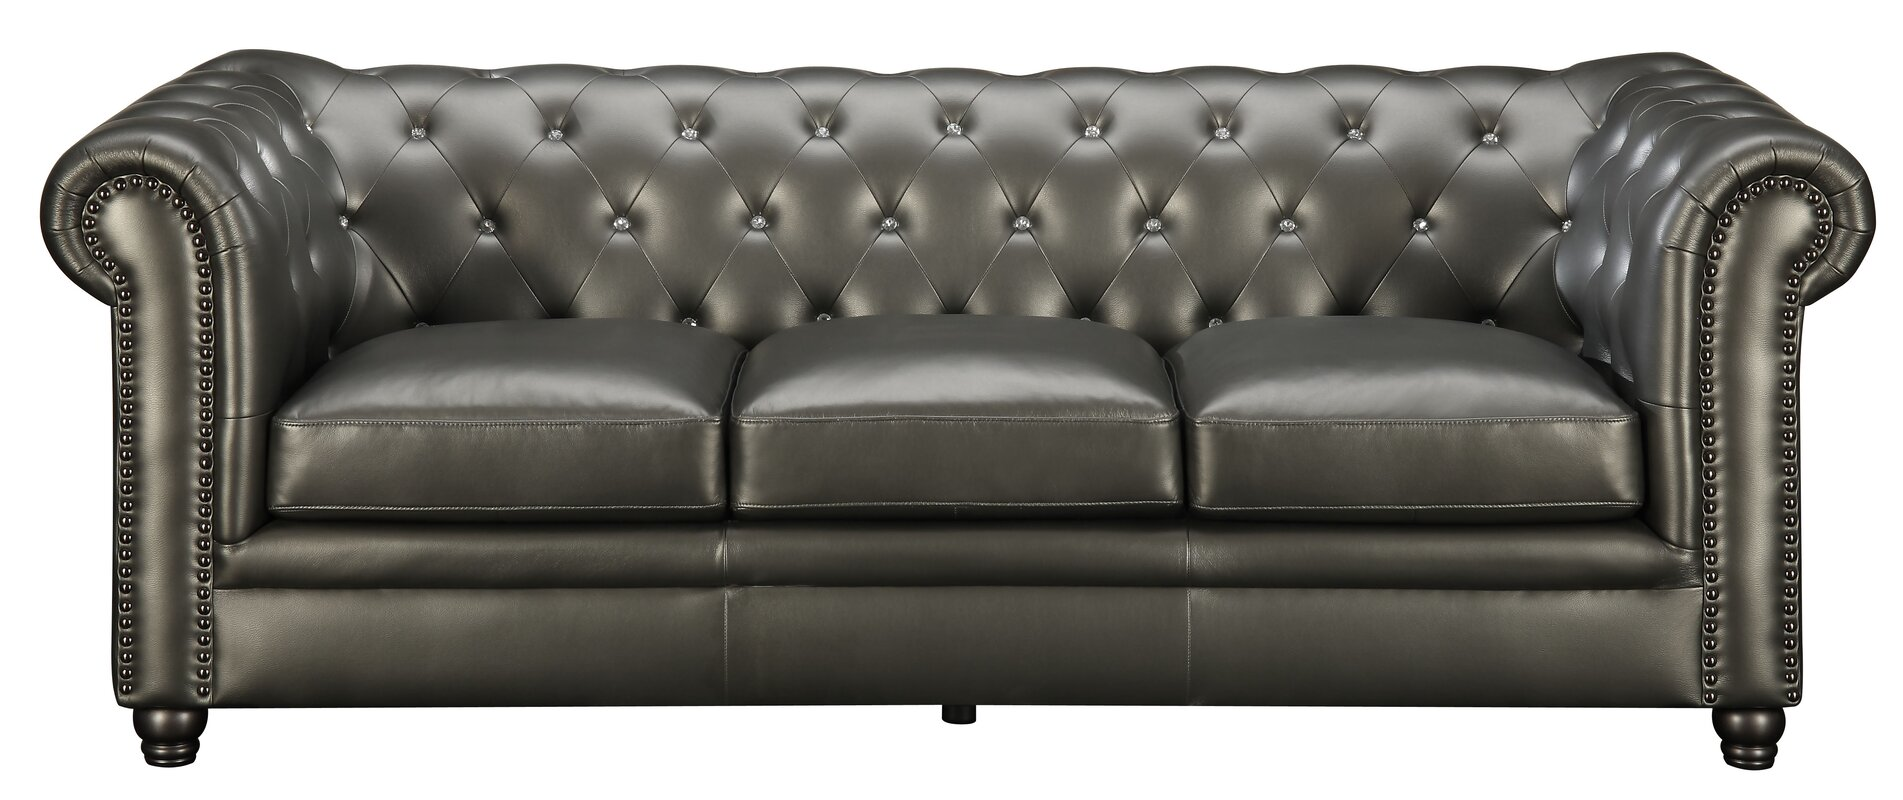 Vanallen Leather Chesterfield Sofa & Reviews